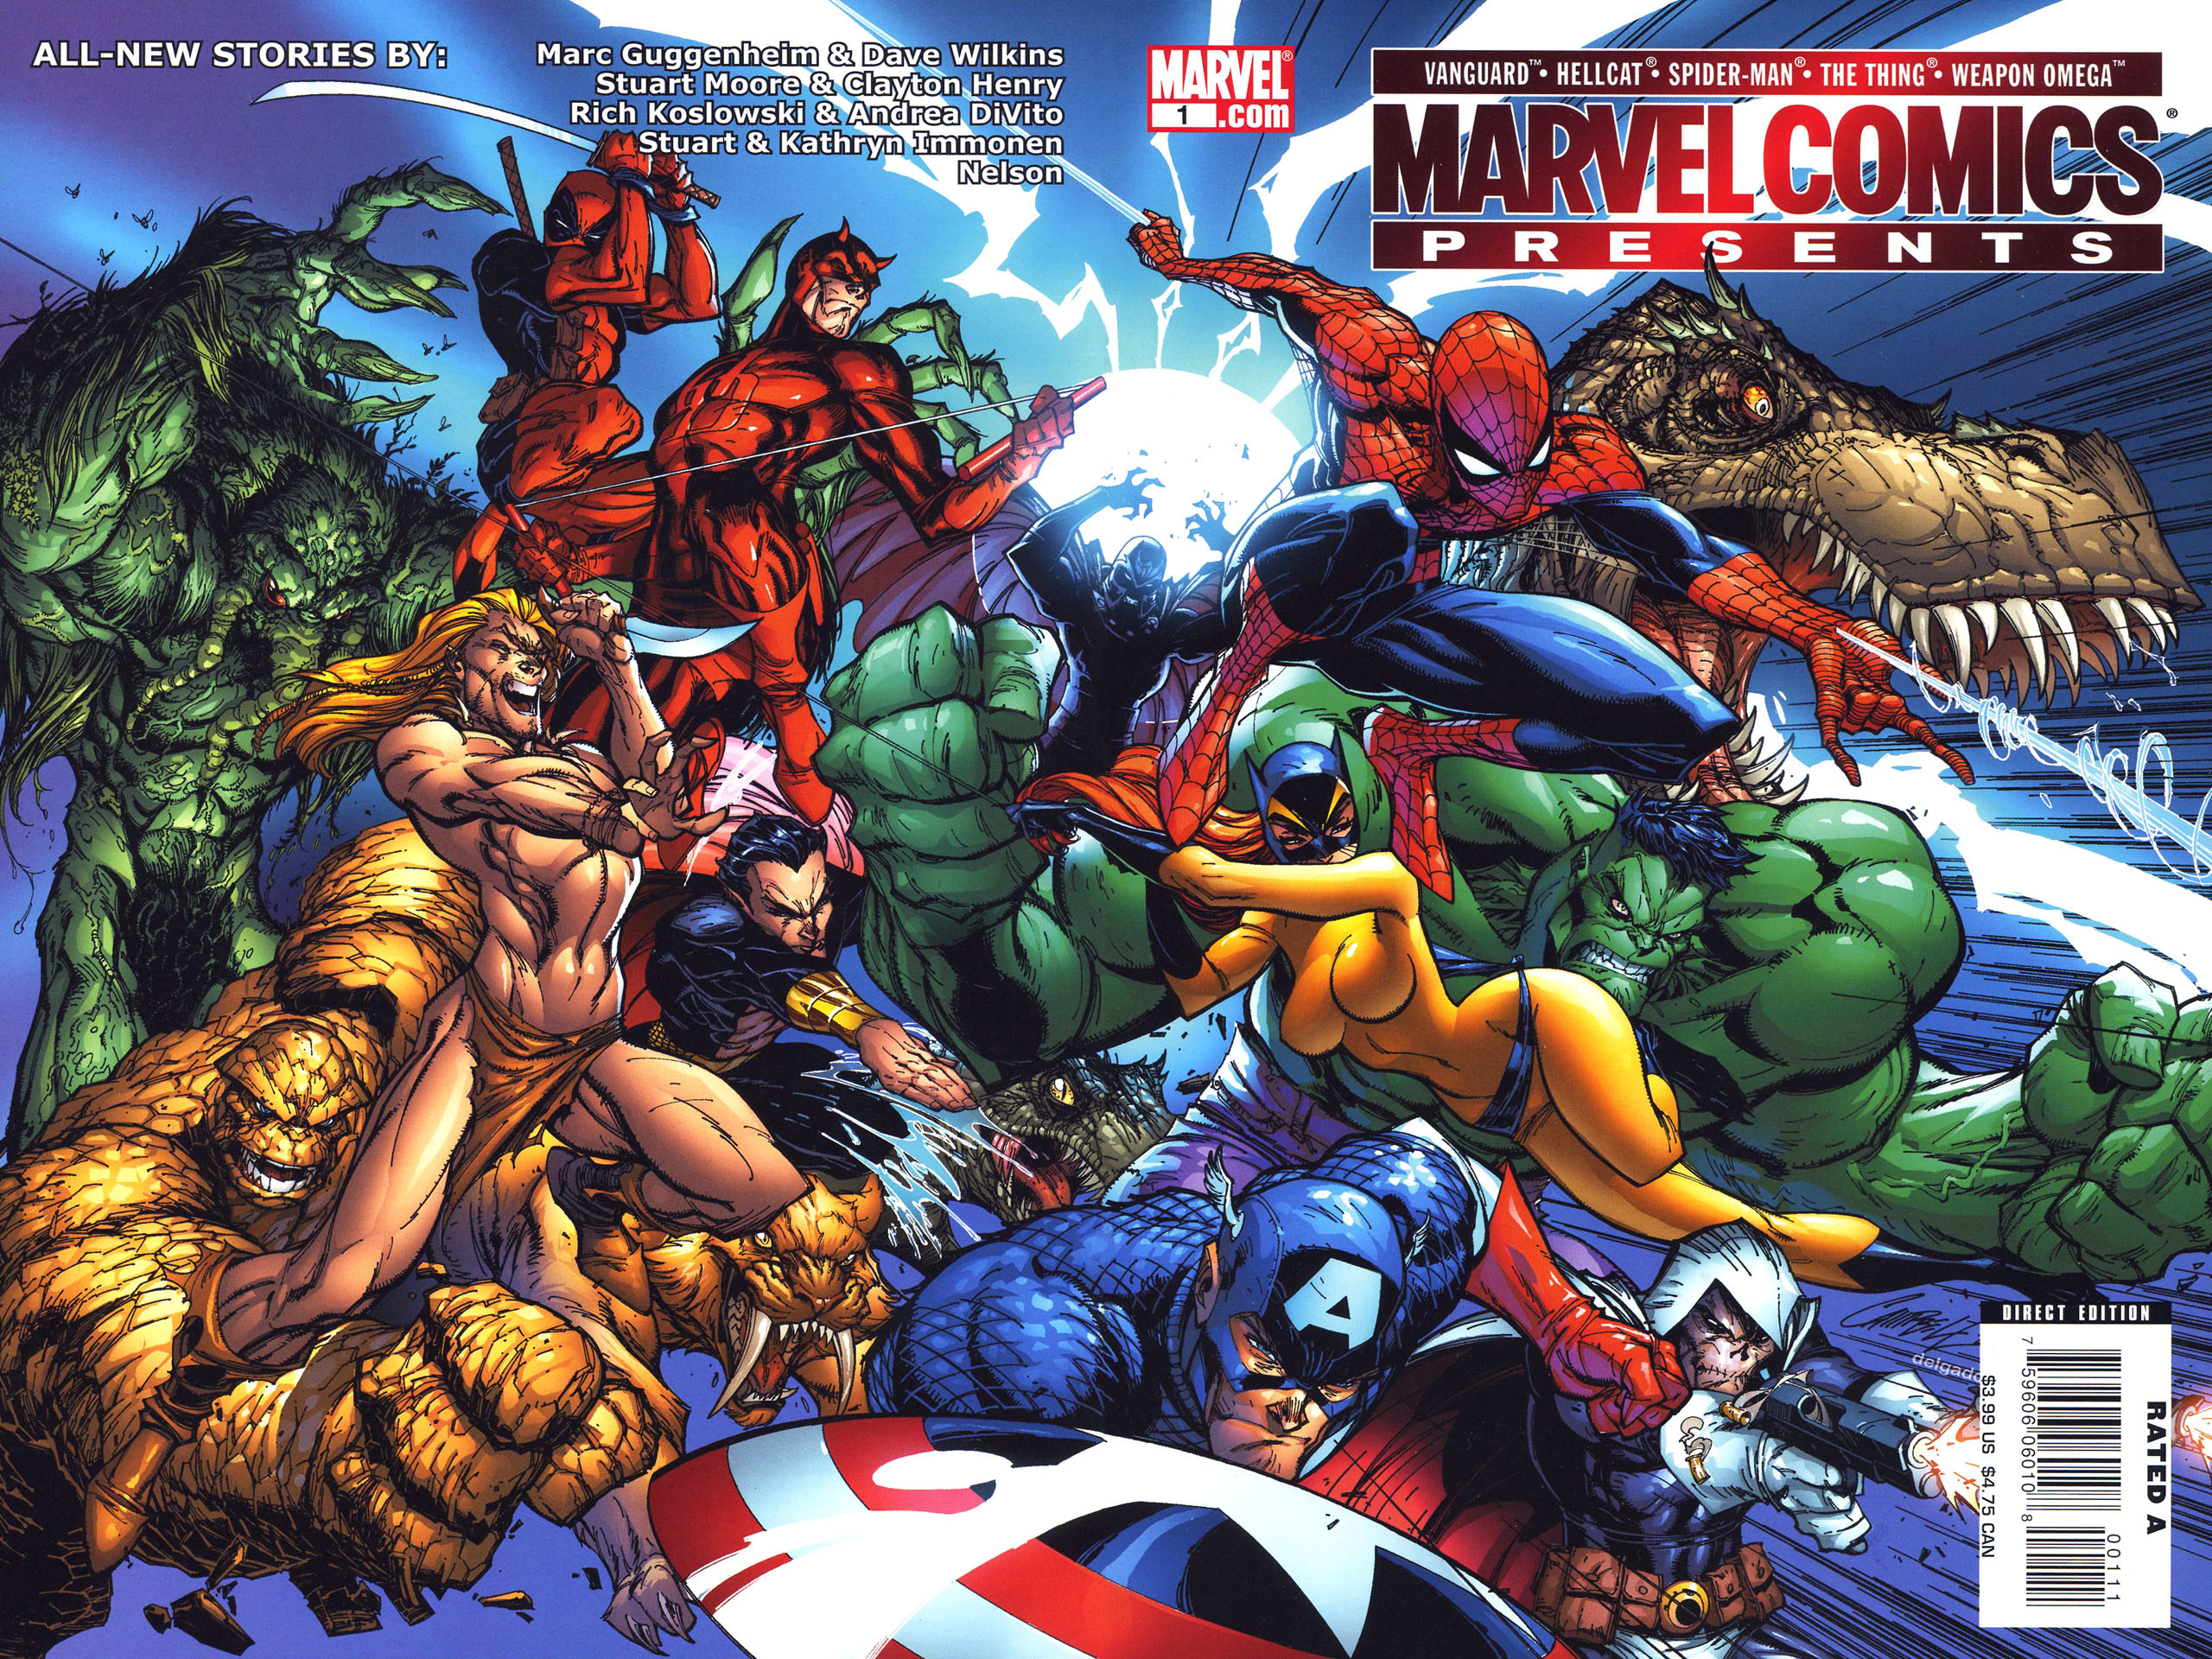 Res: 2560x1920, High Resolution Wallpaper | Marvel Comics  px